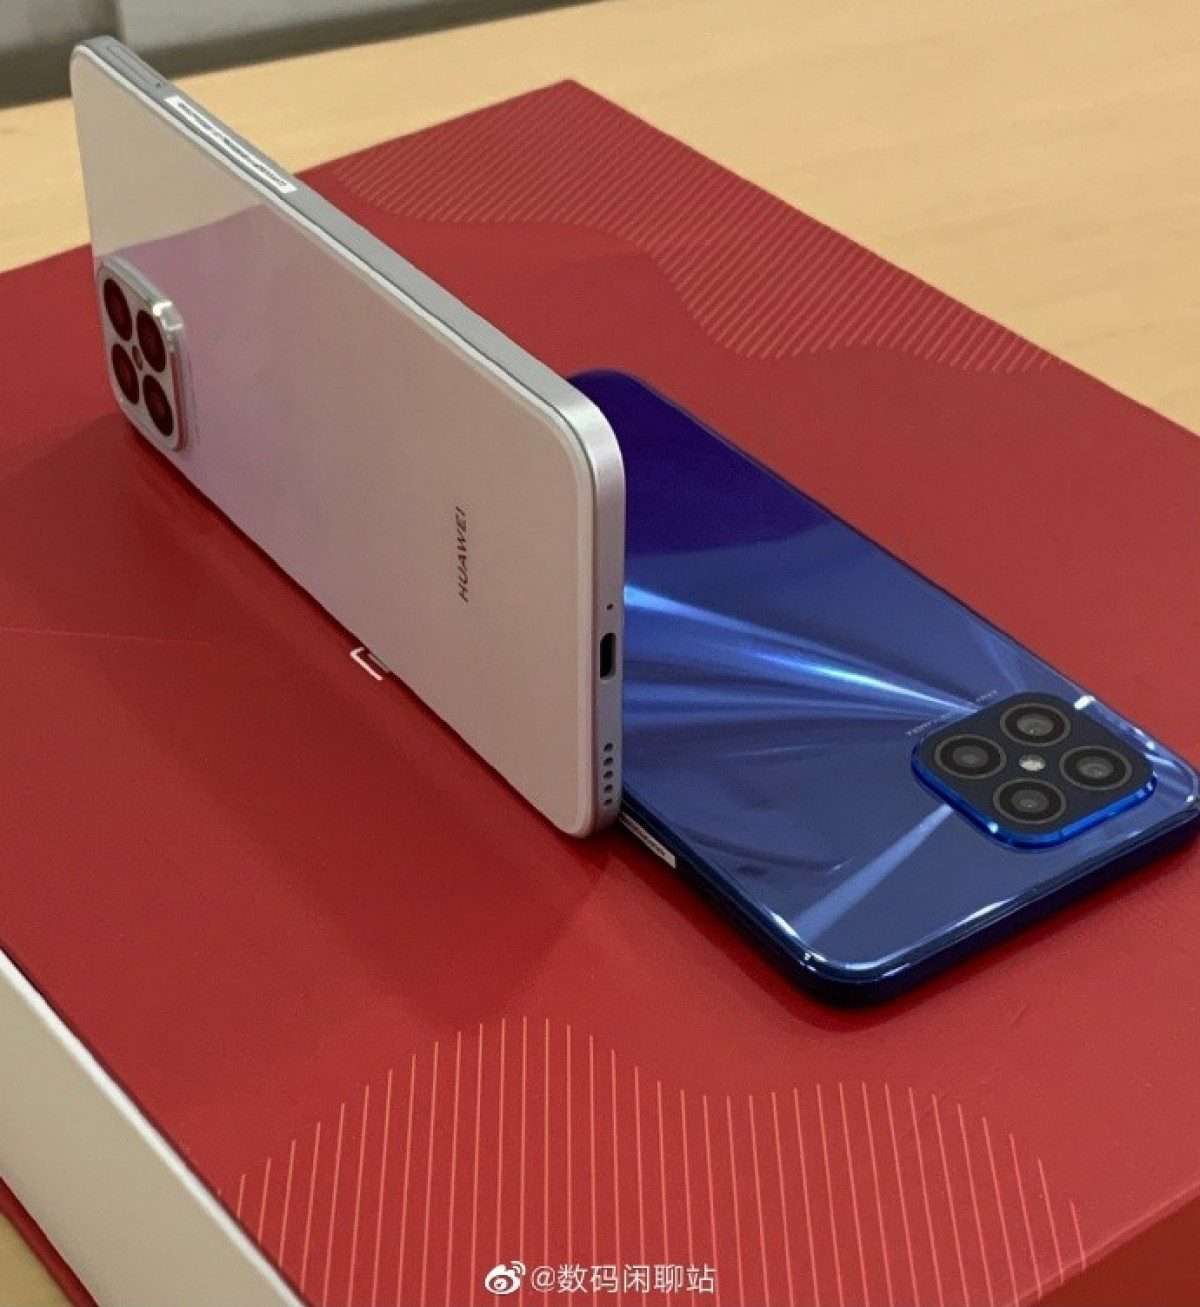 Huawei's nova 8 SE looks similar to the iPhone 12 and will be revealed in live photos